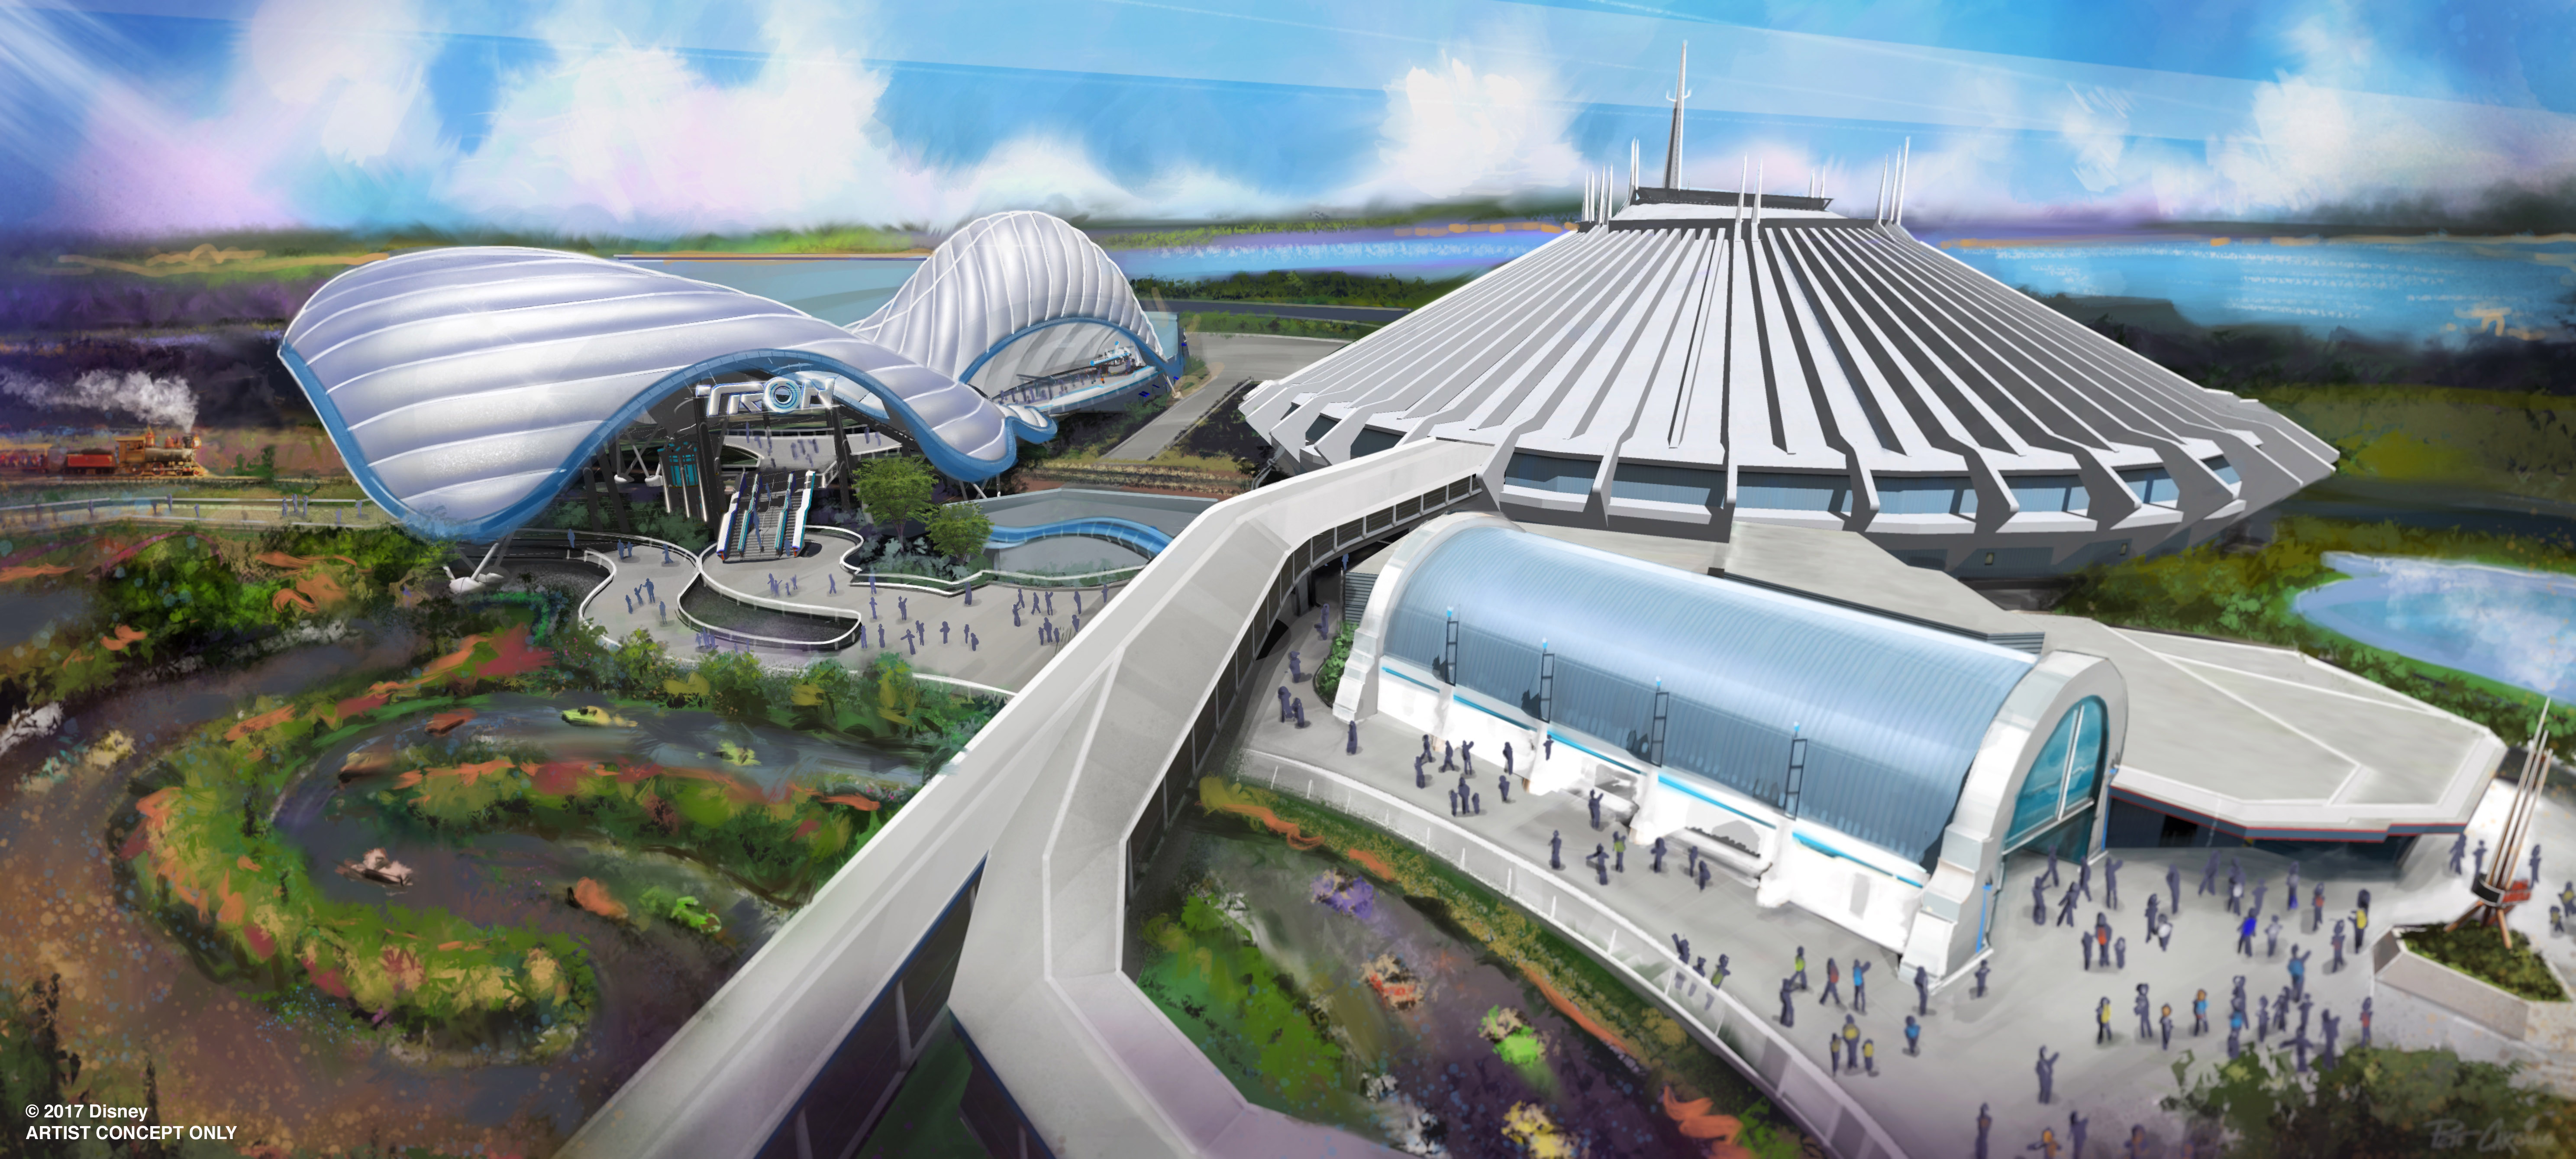 Will sit in an entirely new area right next to the space mountain attraction at magic kingdom park bob chapek chairman of walt disney parks resorts